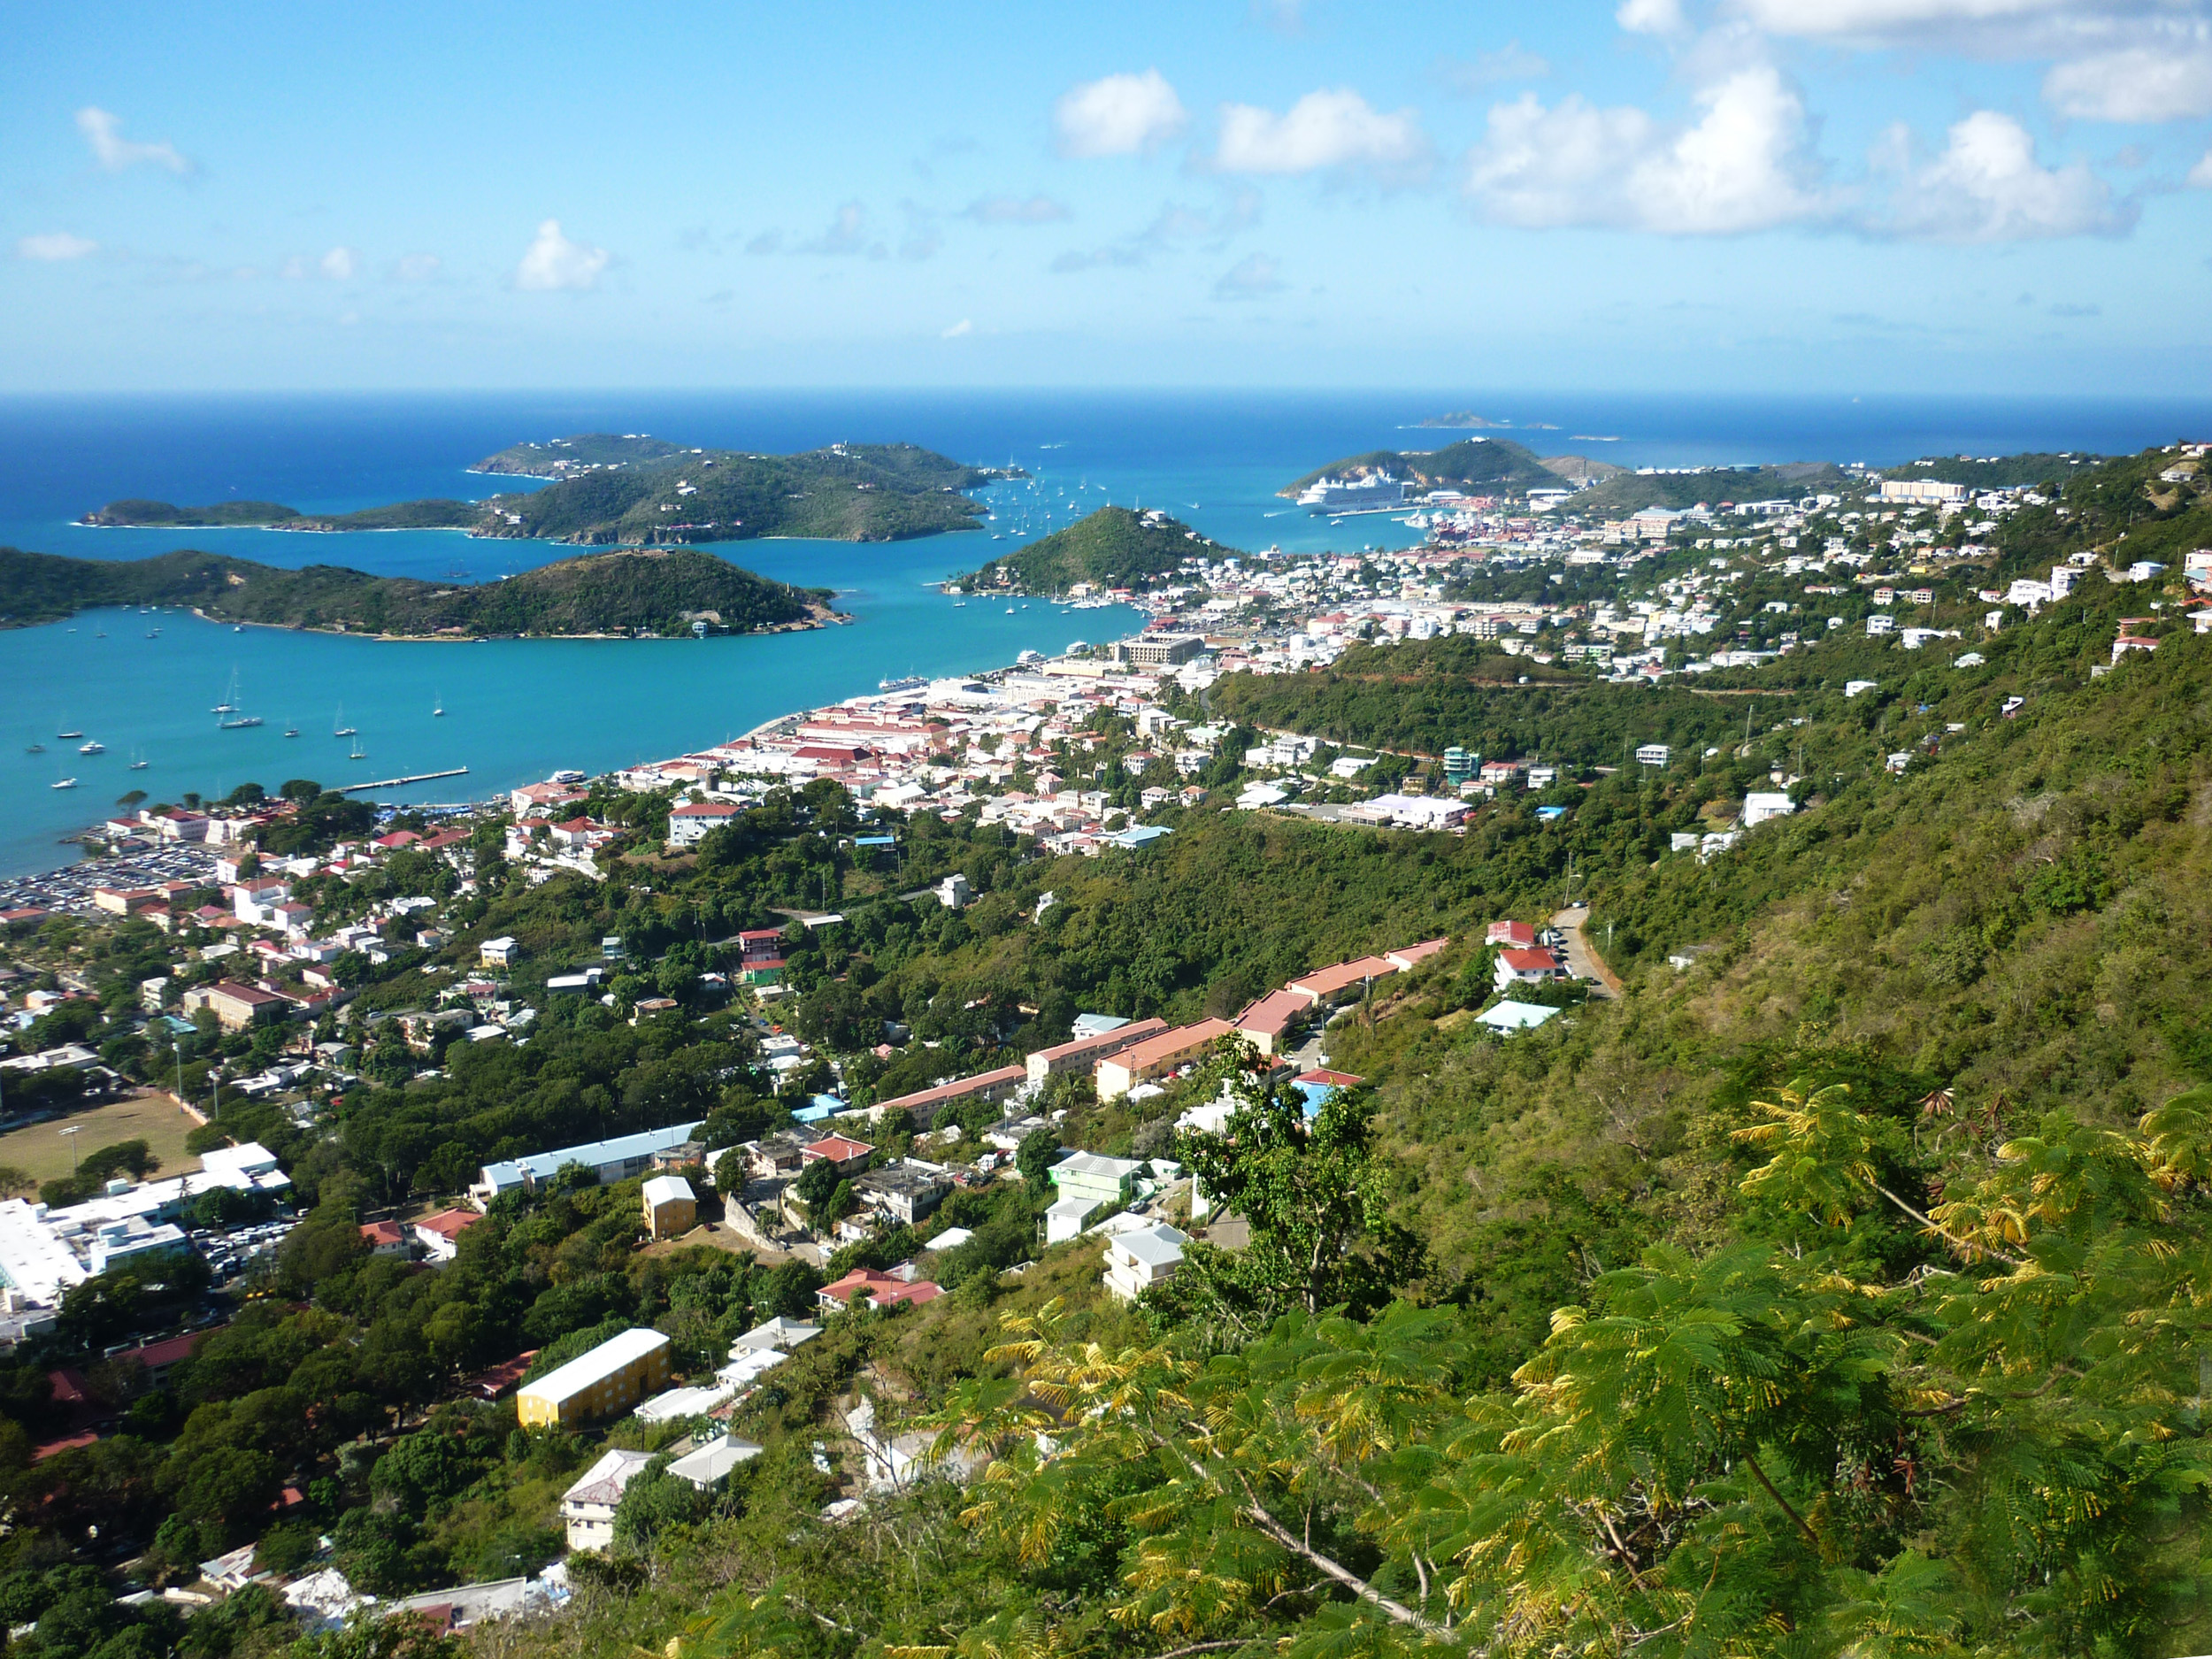 panoramic view of the coast of the island of st thomas, us virgin islands